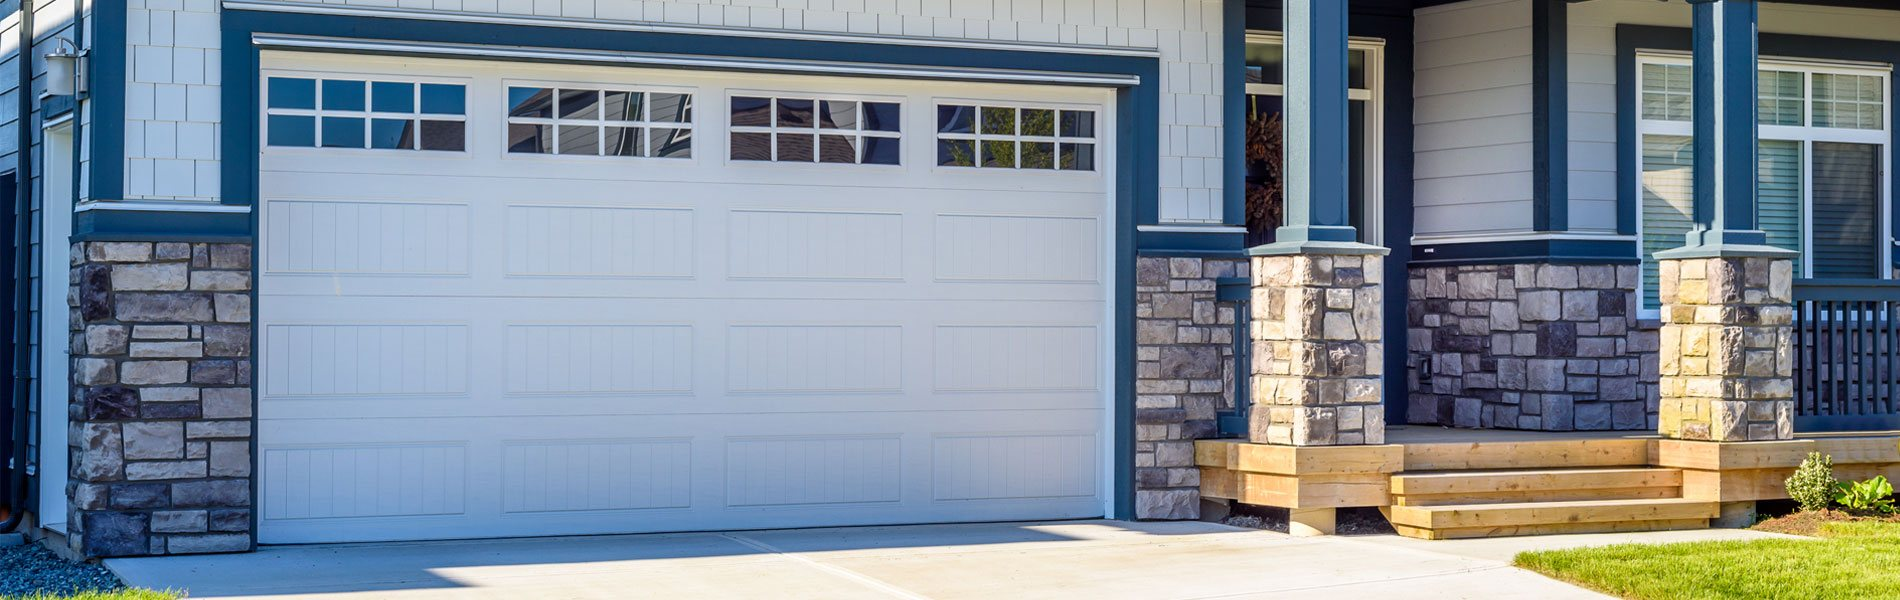 Neighborhood Garage Door Lexington, MA 781-499-5072